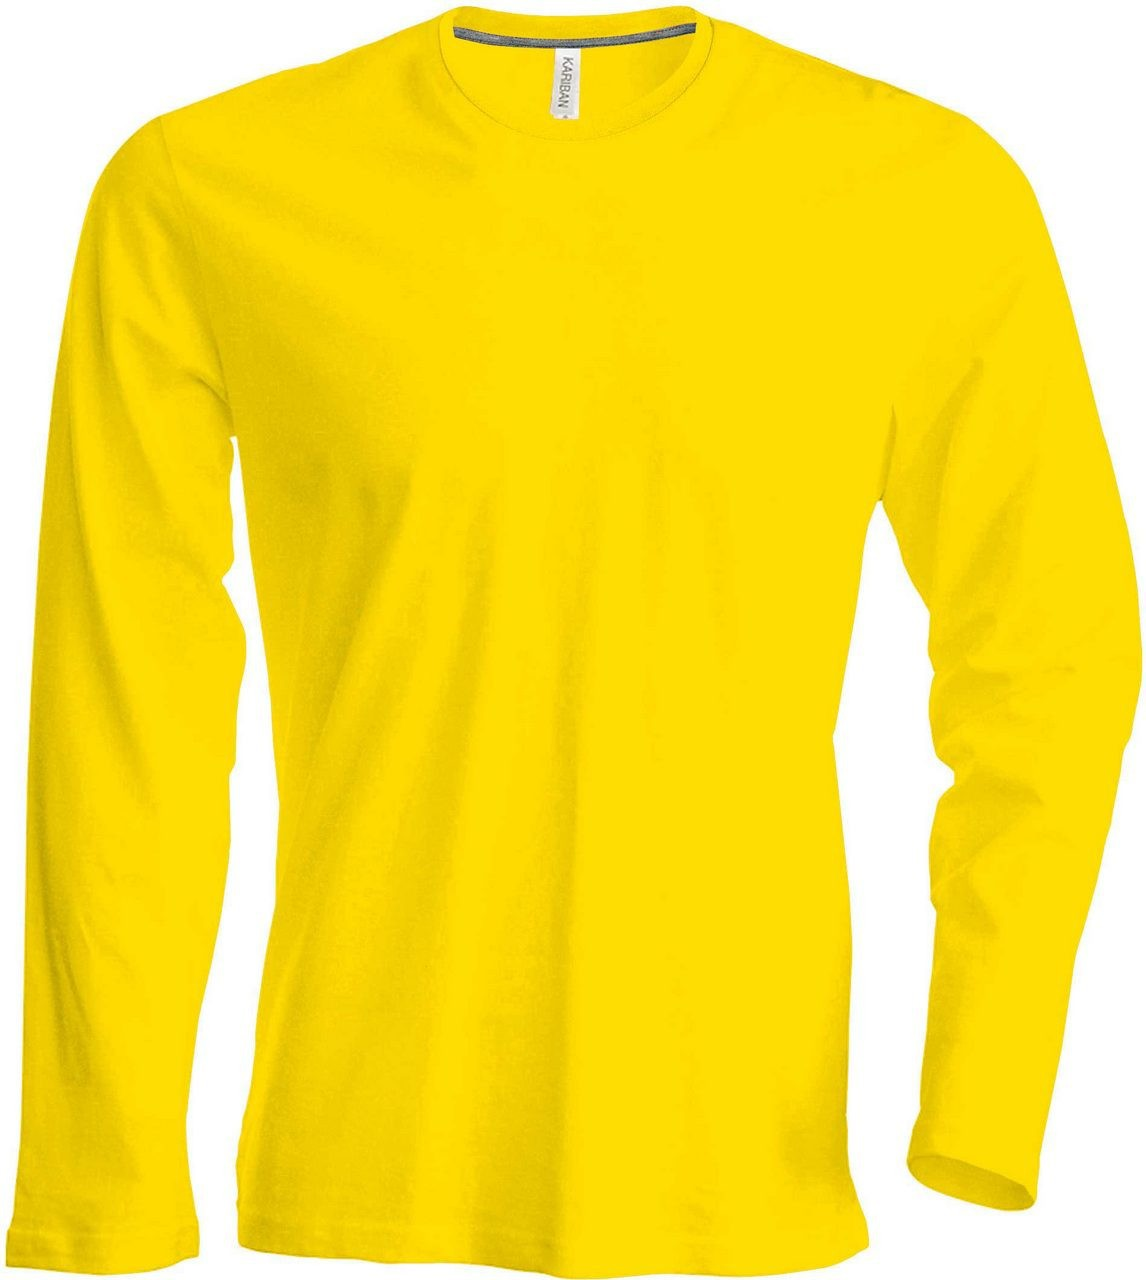 Mens Yellow Long Sleeve T Shirt South Park T Shirts